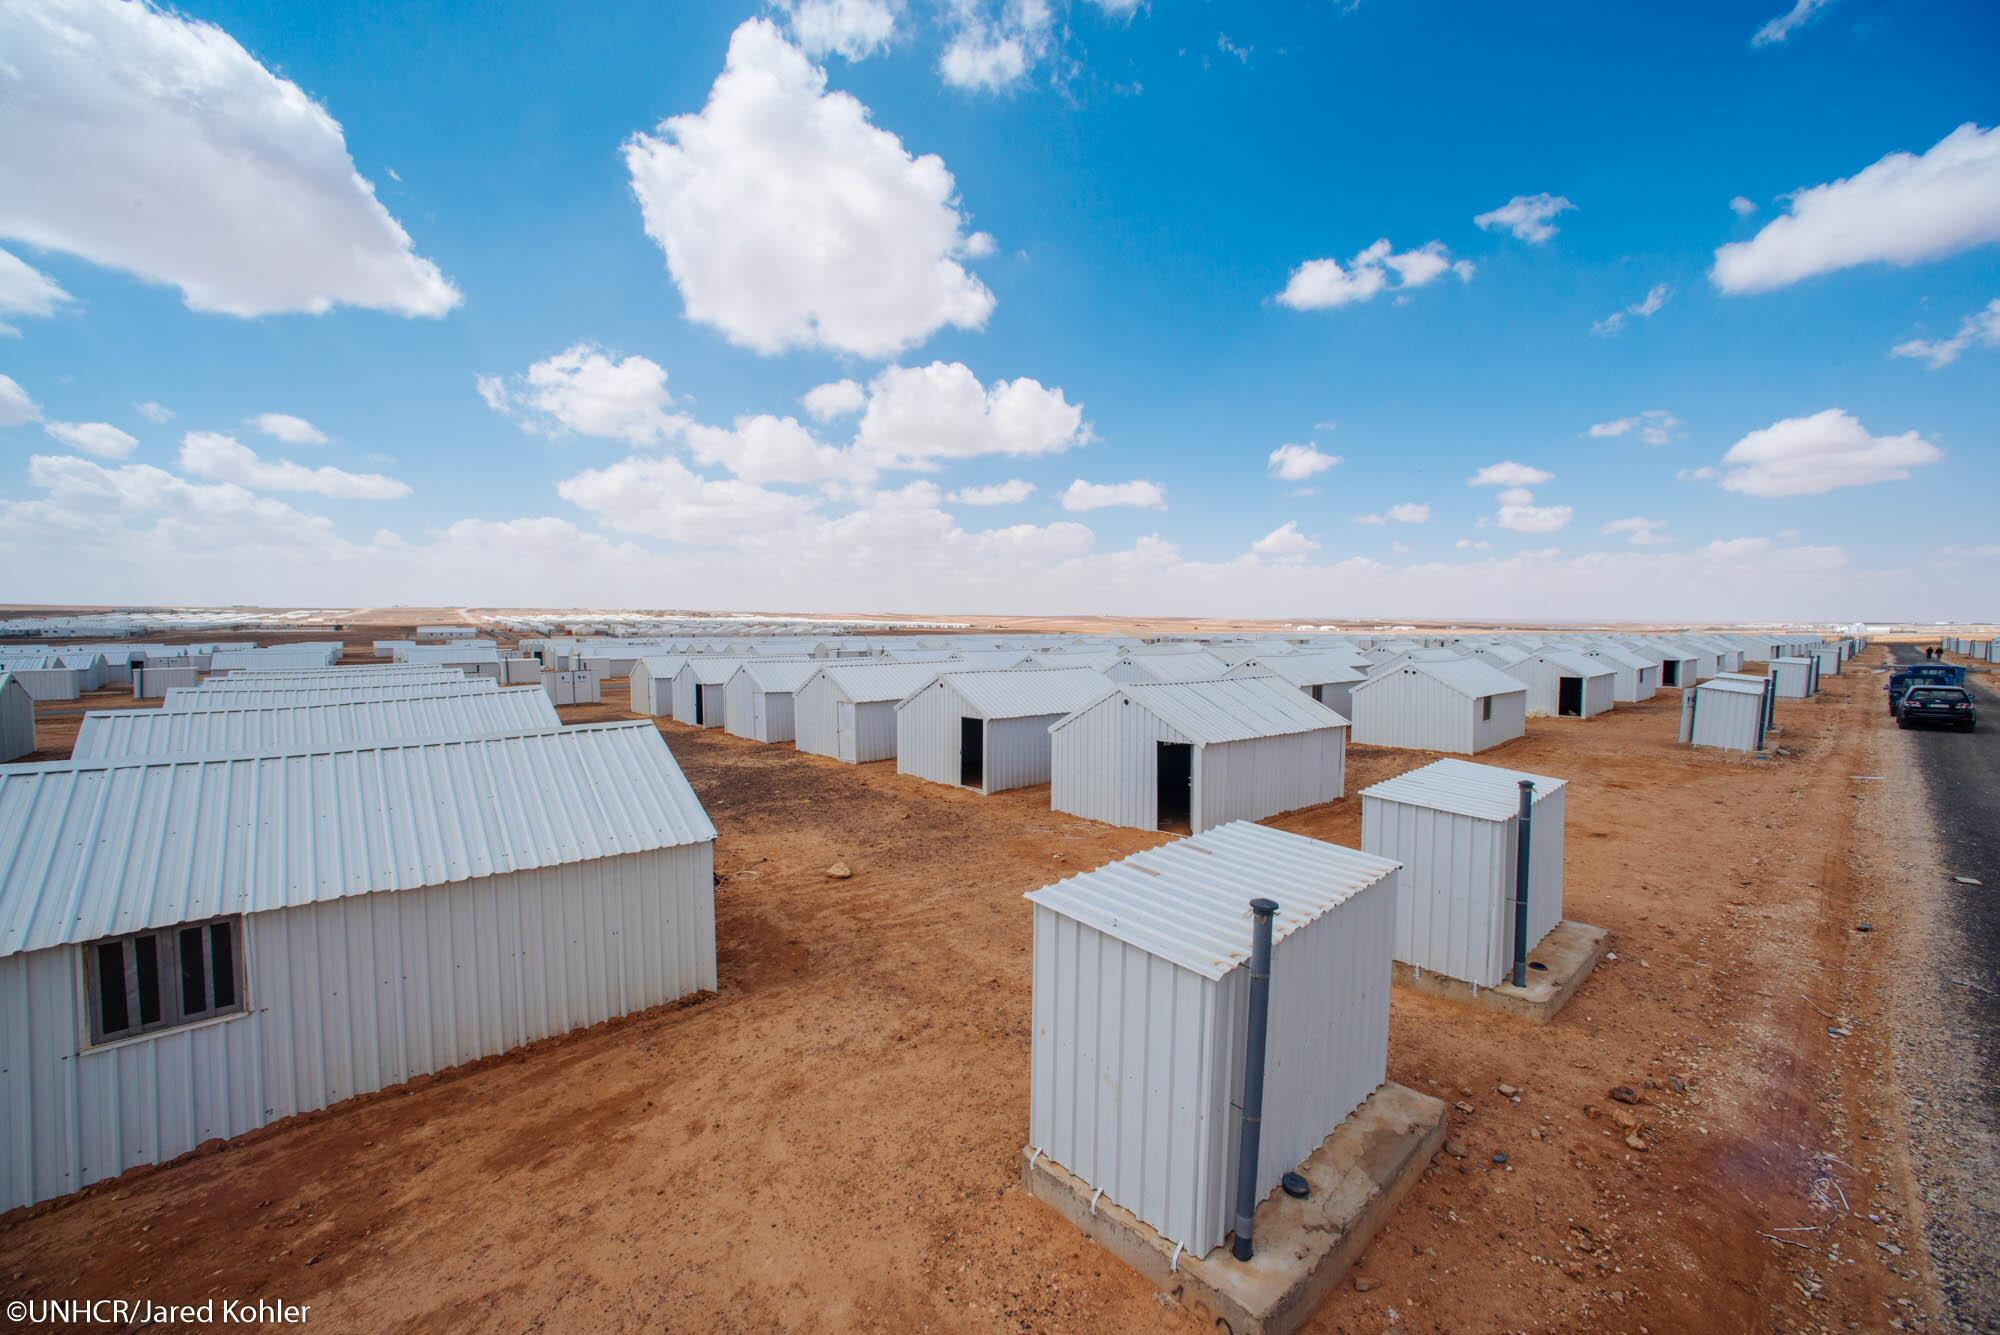 Syrian Refugee camp Azraq